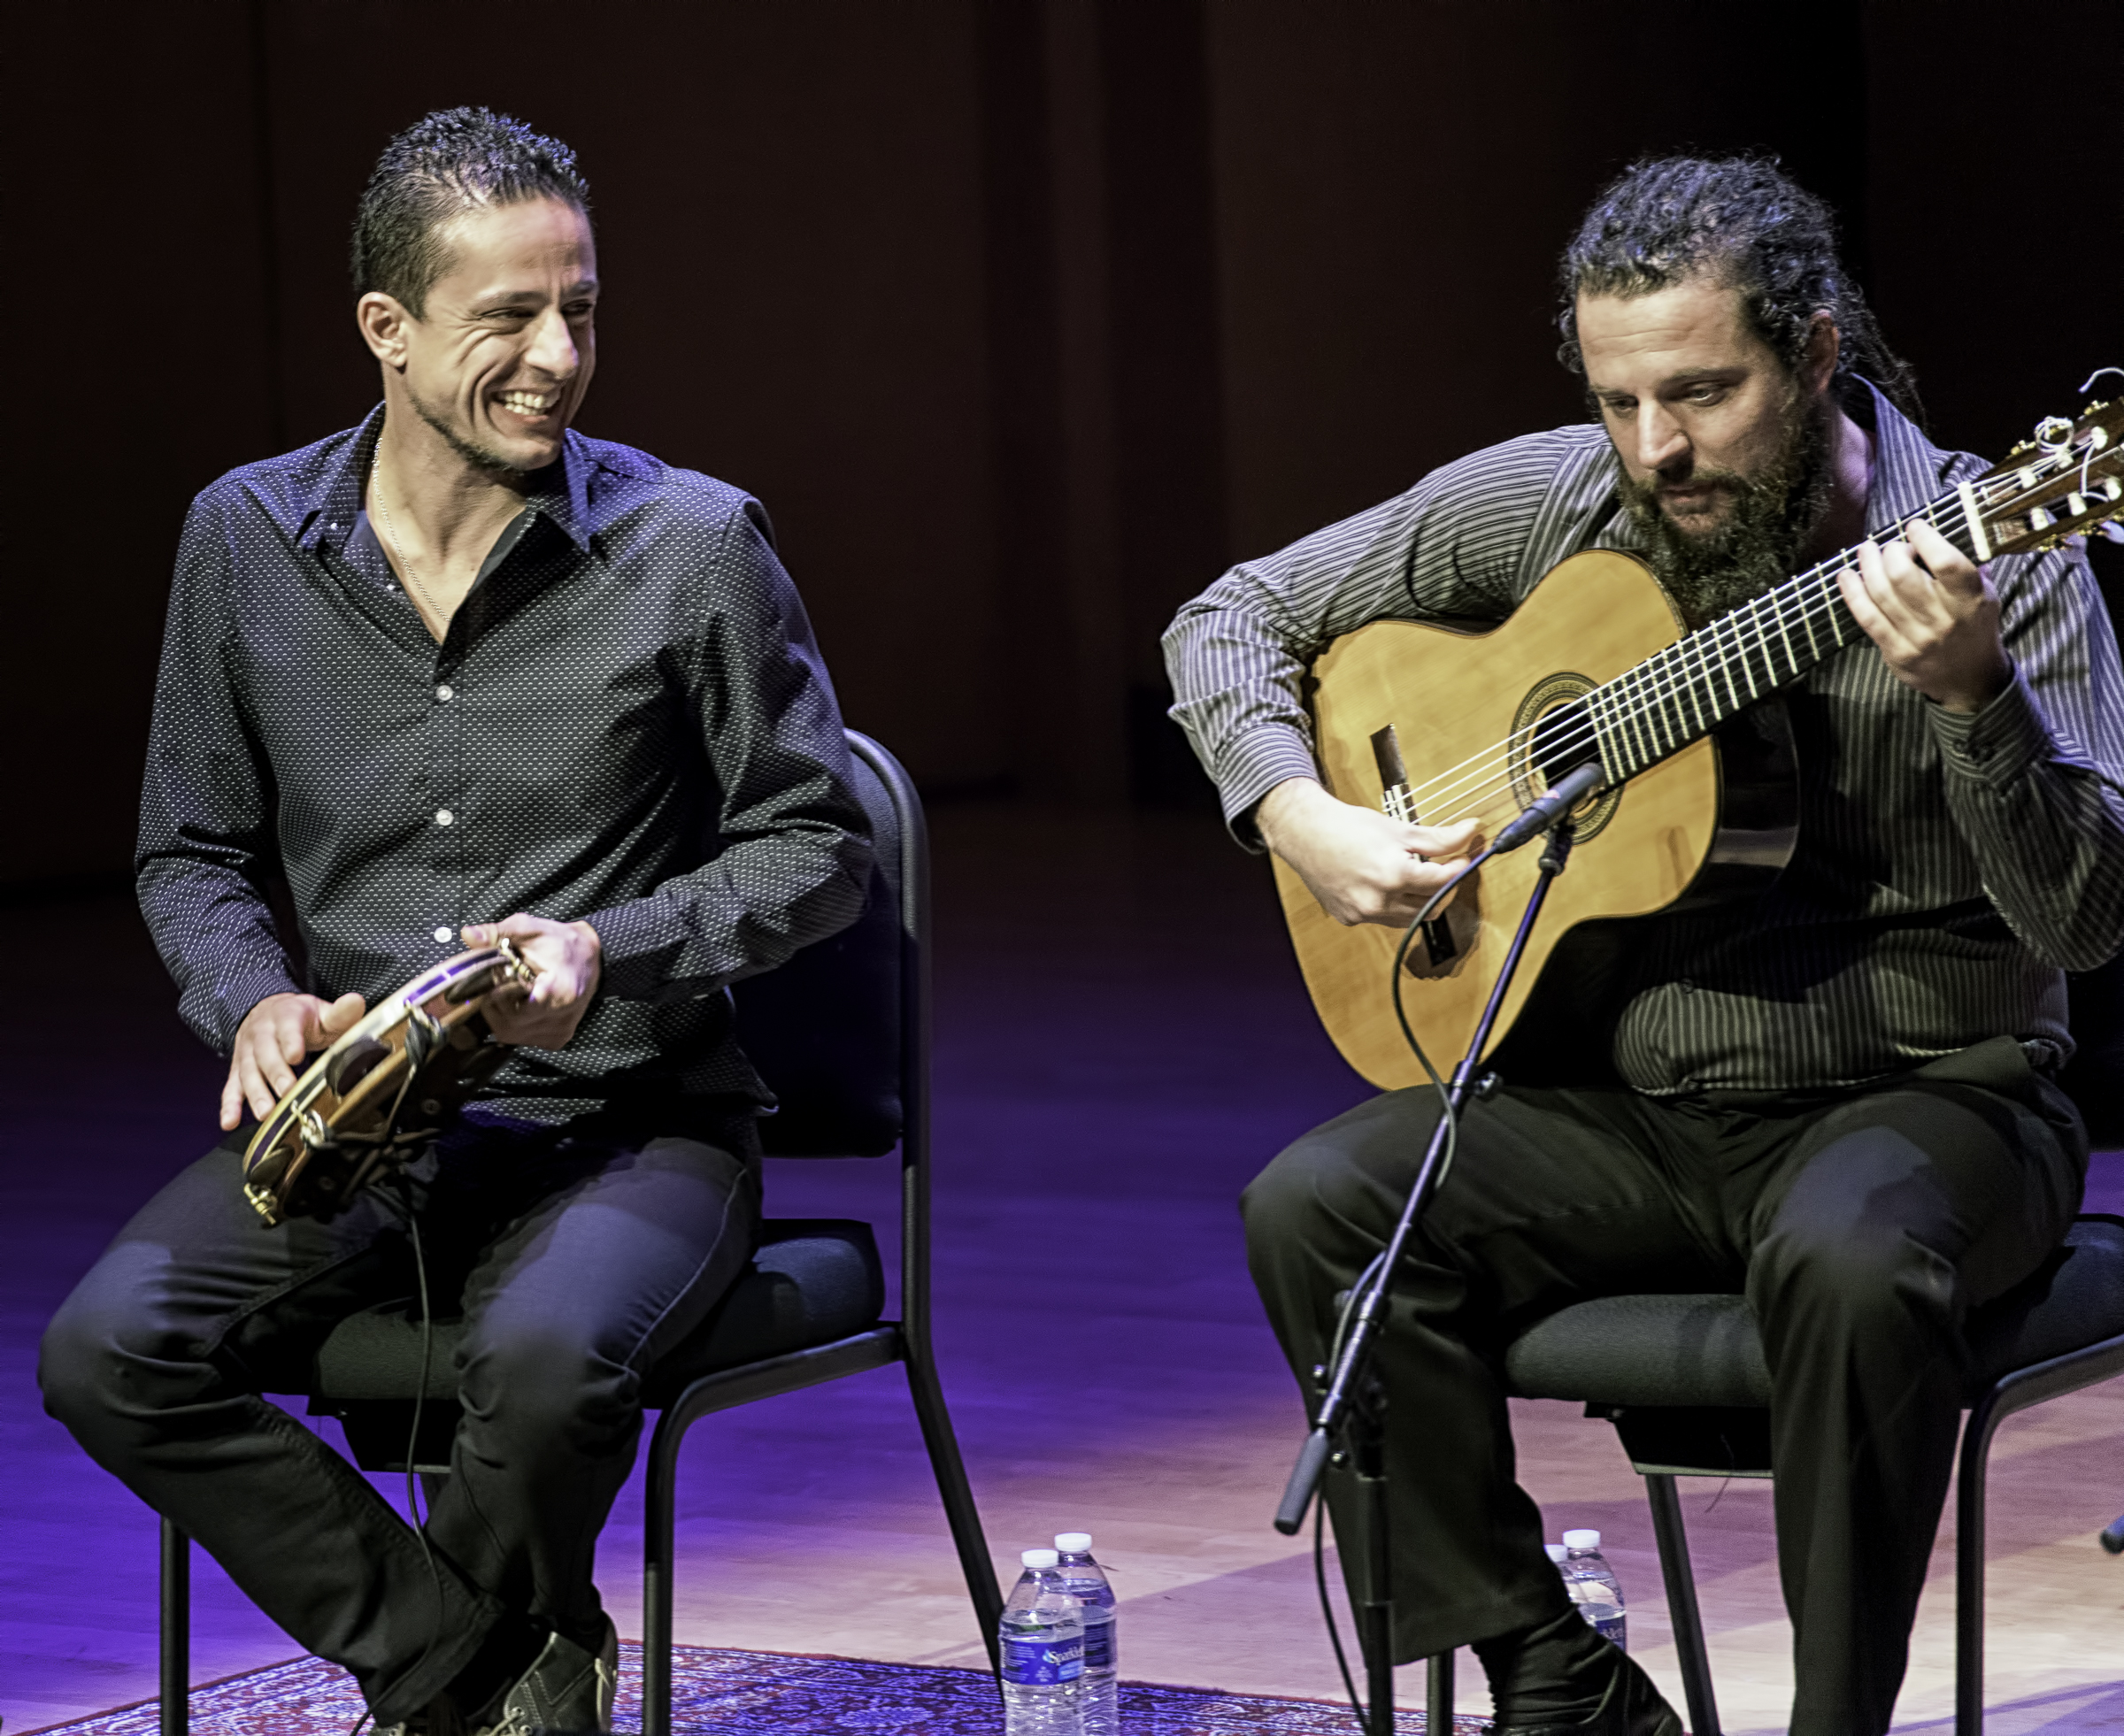 Alexandre Lora and Douglas Lora with Anat Cohen and Trio Brasileiro At The Musical Instrument Museum (MIM) In Phoenix